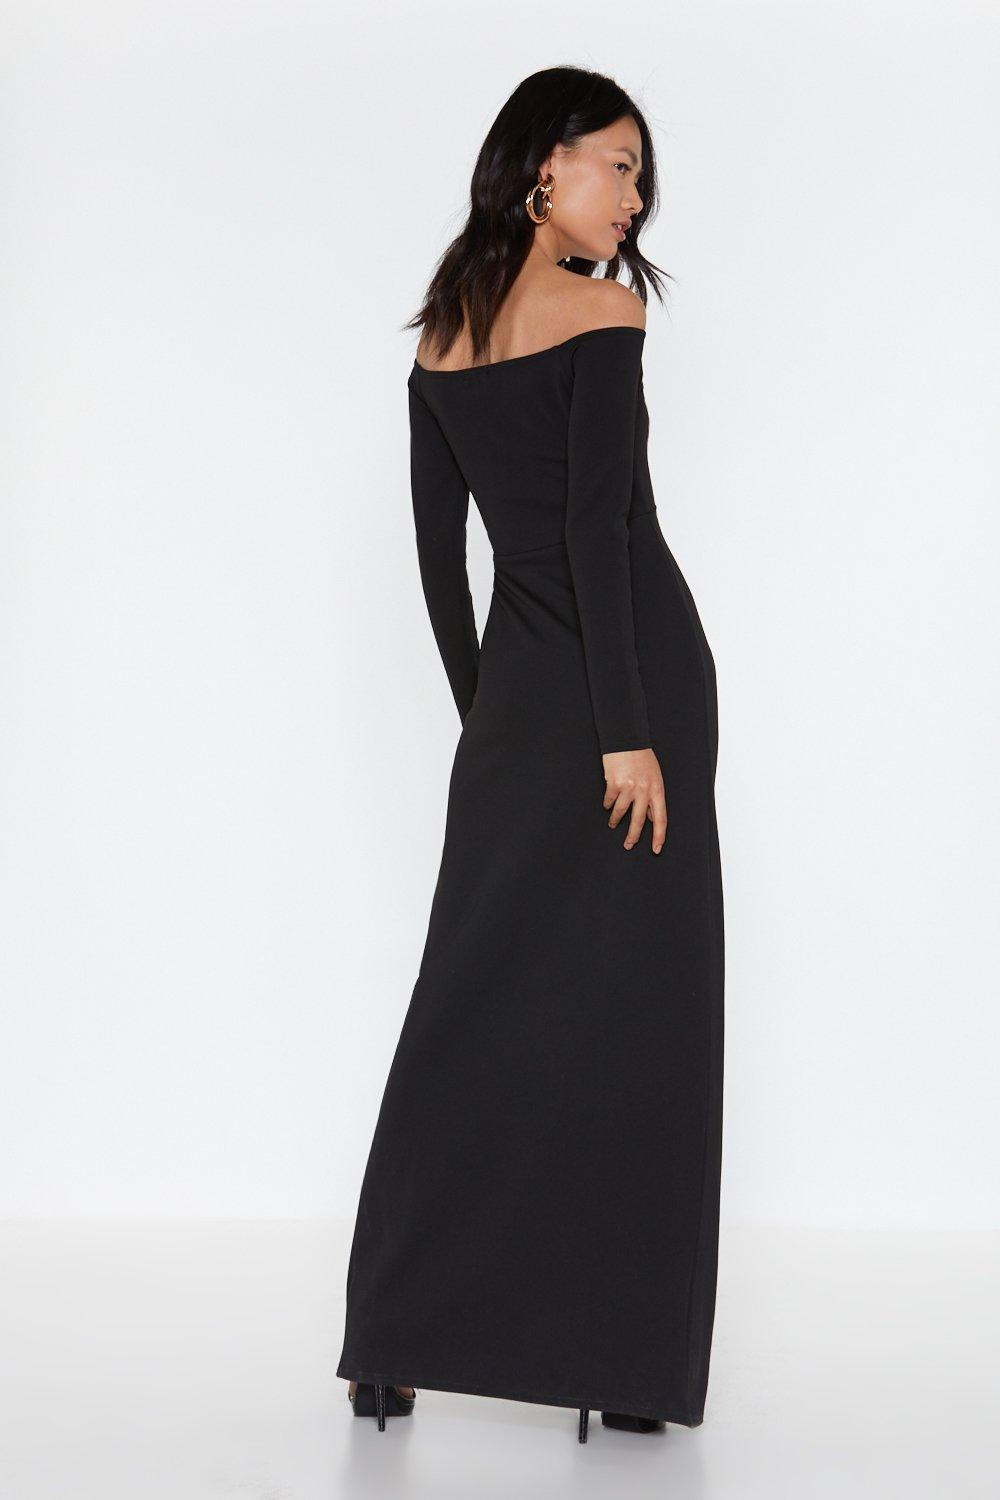 efc03ece24e5 Great Lengths Wrap Maxi Dress | Shop Clothes at Nasty Gal!